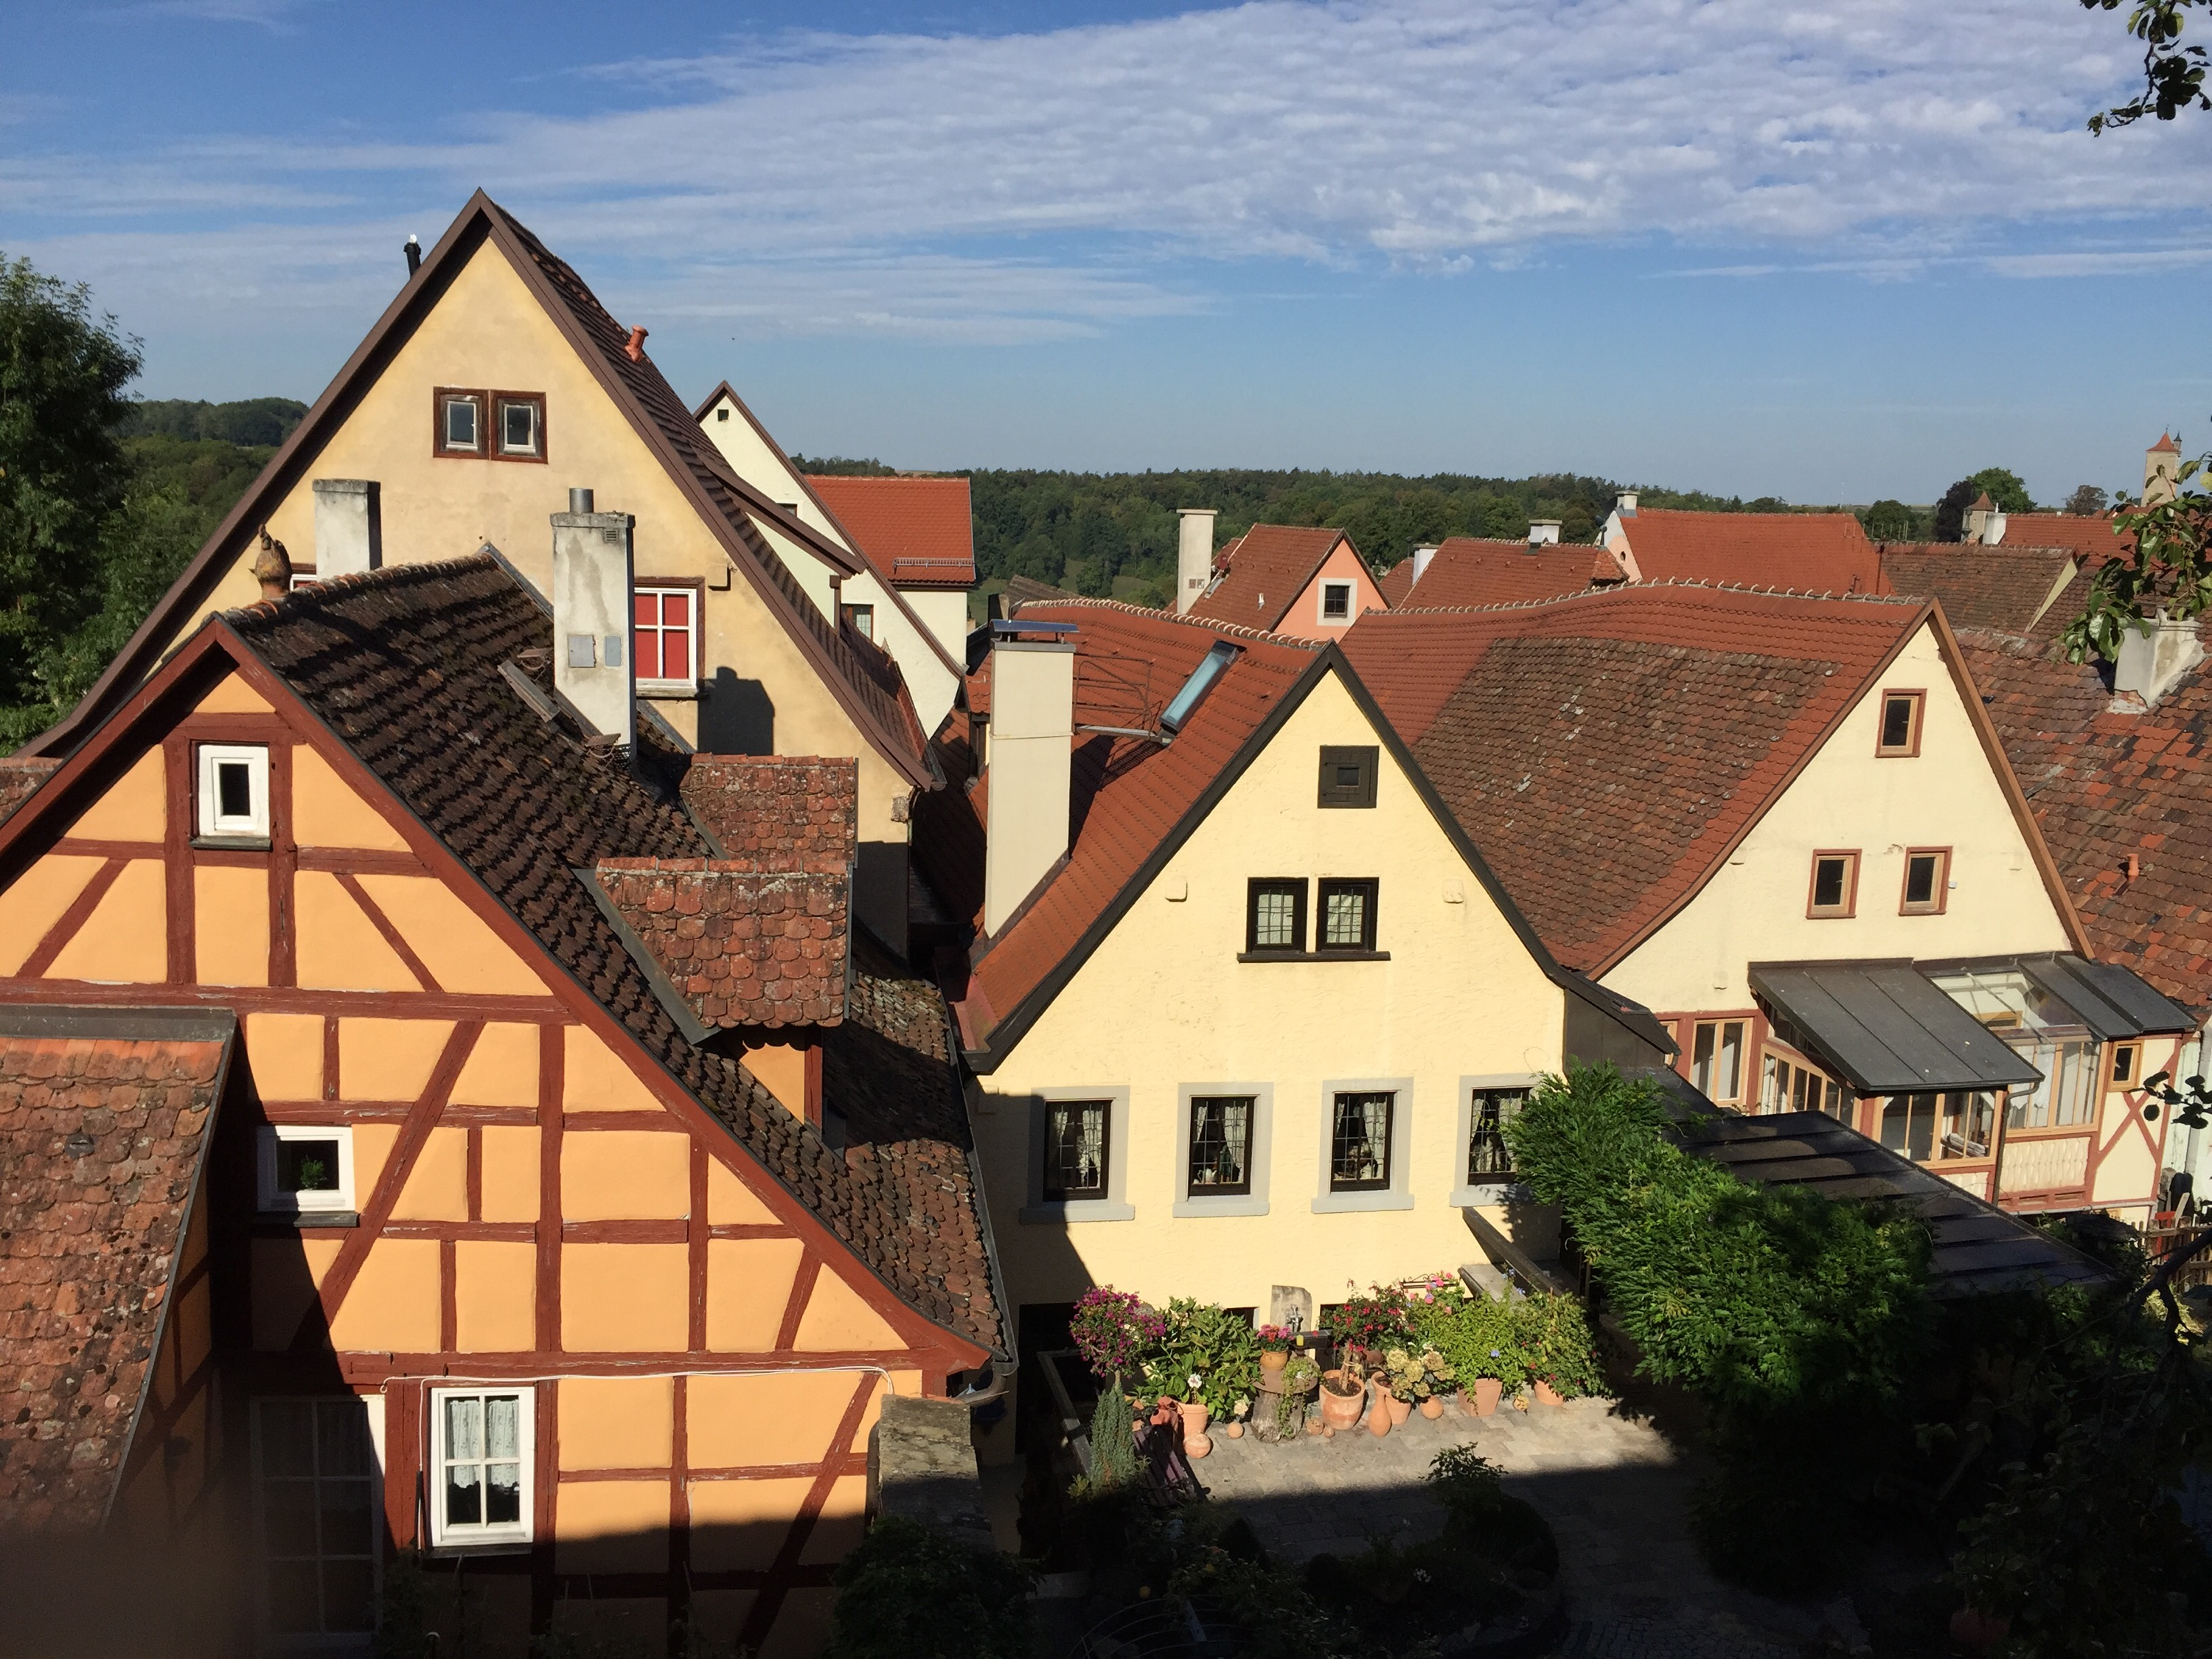 Revisiting Rothenburg